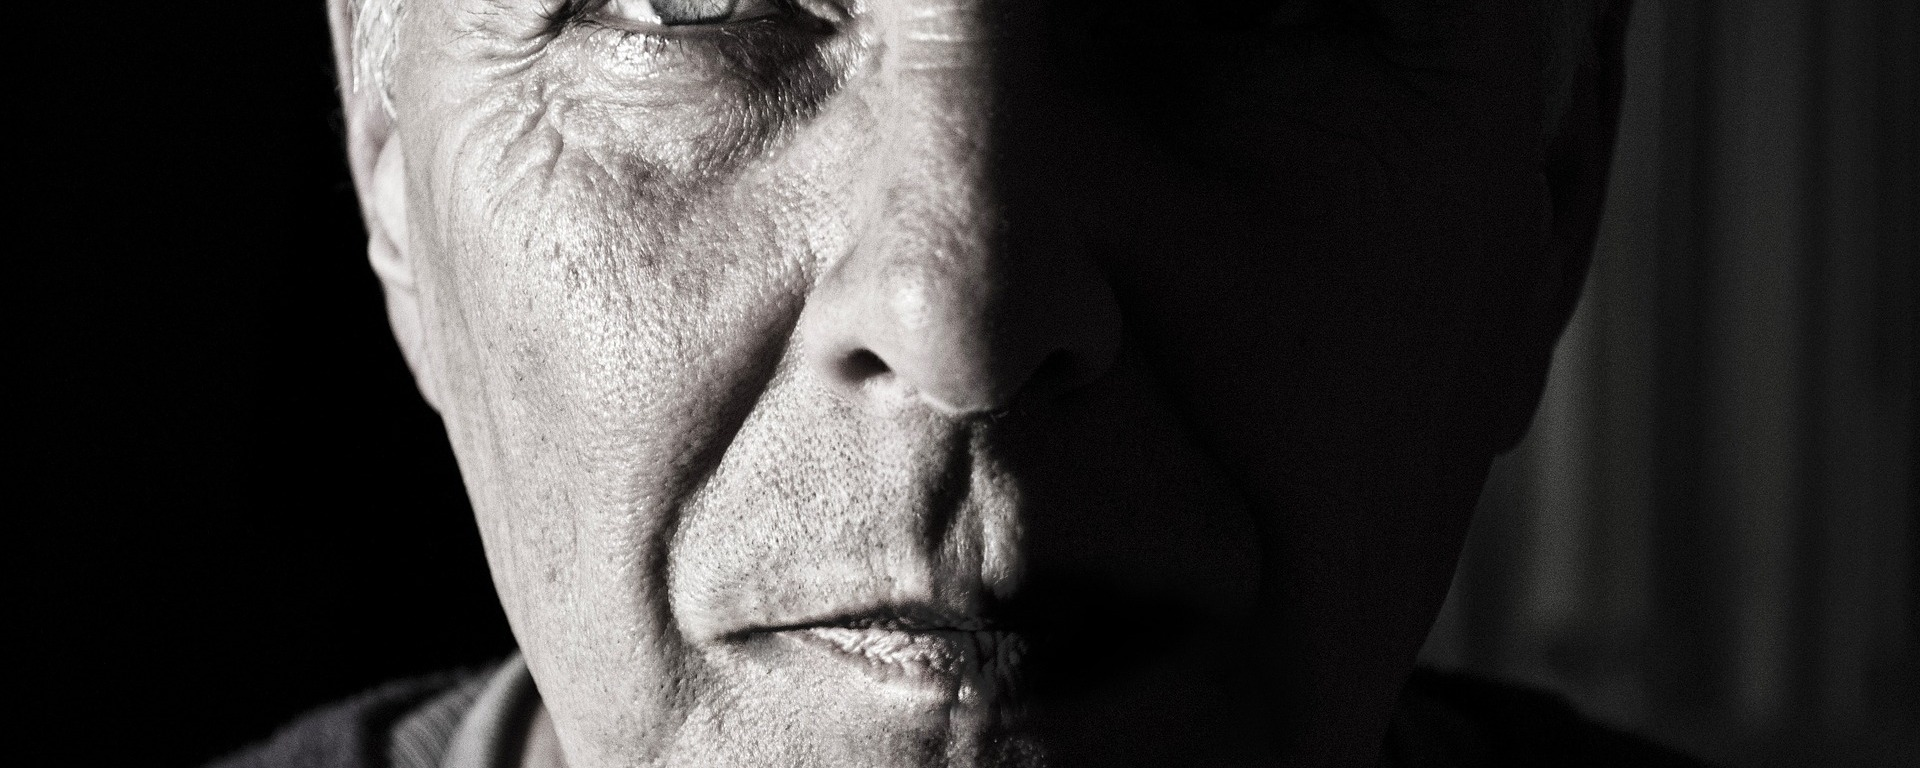 face,portrait,man,elderly,determined,character,strong,old,wrinkled,male,head,phantom,shadow,eye,expression,person,mouth,nose,human,skin,DON CHARISMA